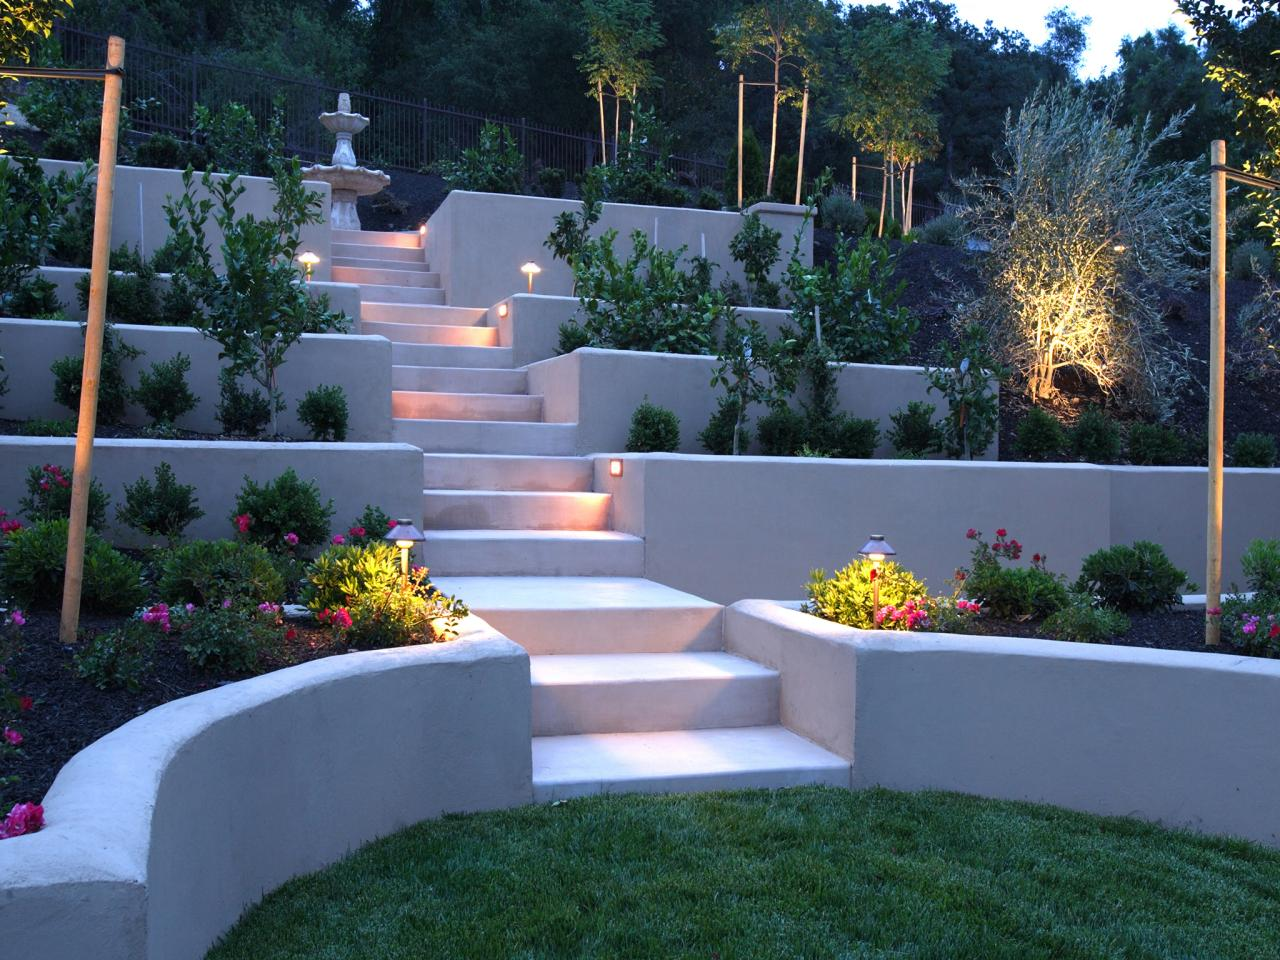 Hardscaping-Dallas TX Landscape Designs & Outdoor Living Areas-We offer Landscape Design, Outdoor Patios & Pergolas, Outdoor Living Spaces, Stonescapes, Residential & Commercial Landscaping, Irrigation Installation & Repairs, Drainage Systems, Landscape Lighting, Outdoor Living Spaces, Tree Service, Lawn Service, and more.